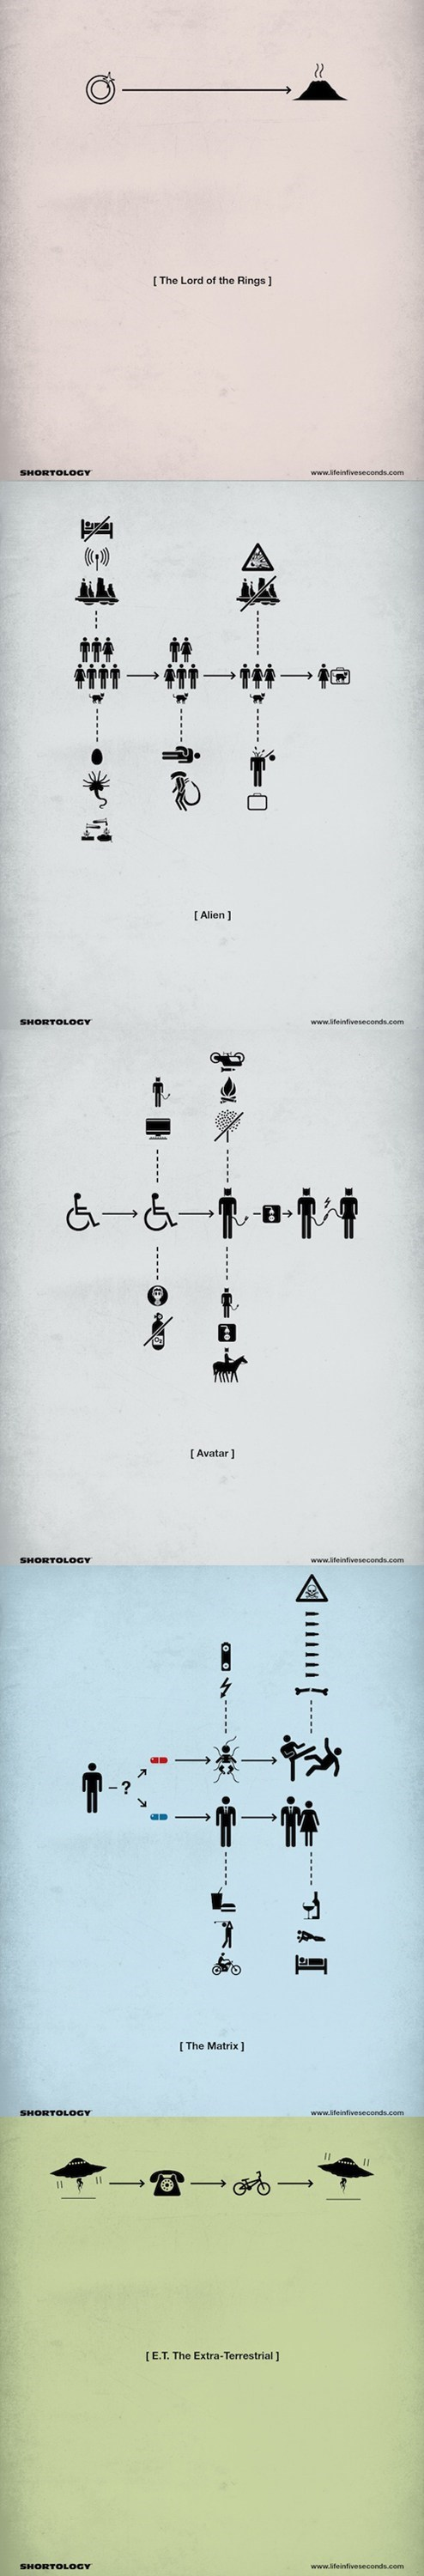 Aliens the matrix Lord of the Rings pictograms posters alien ring Avatar E-T-The-Extra-Terrestrial - 6983910400